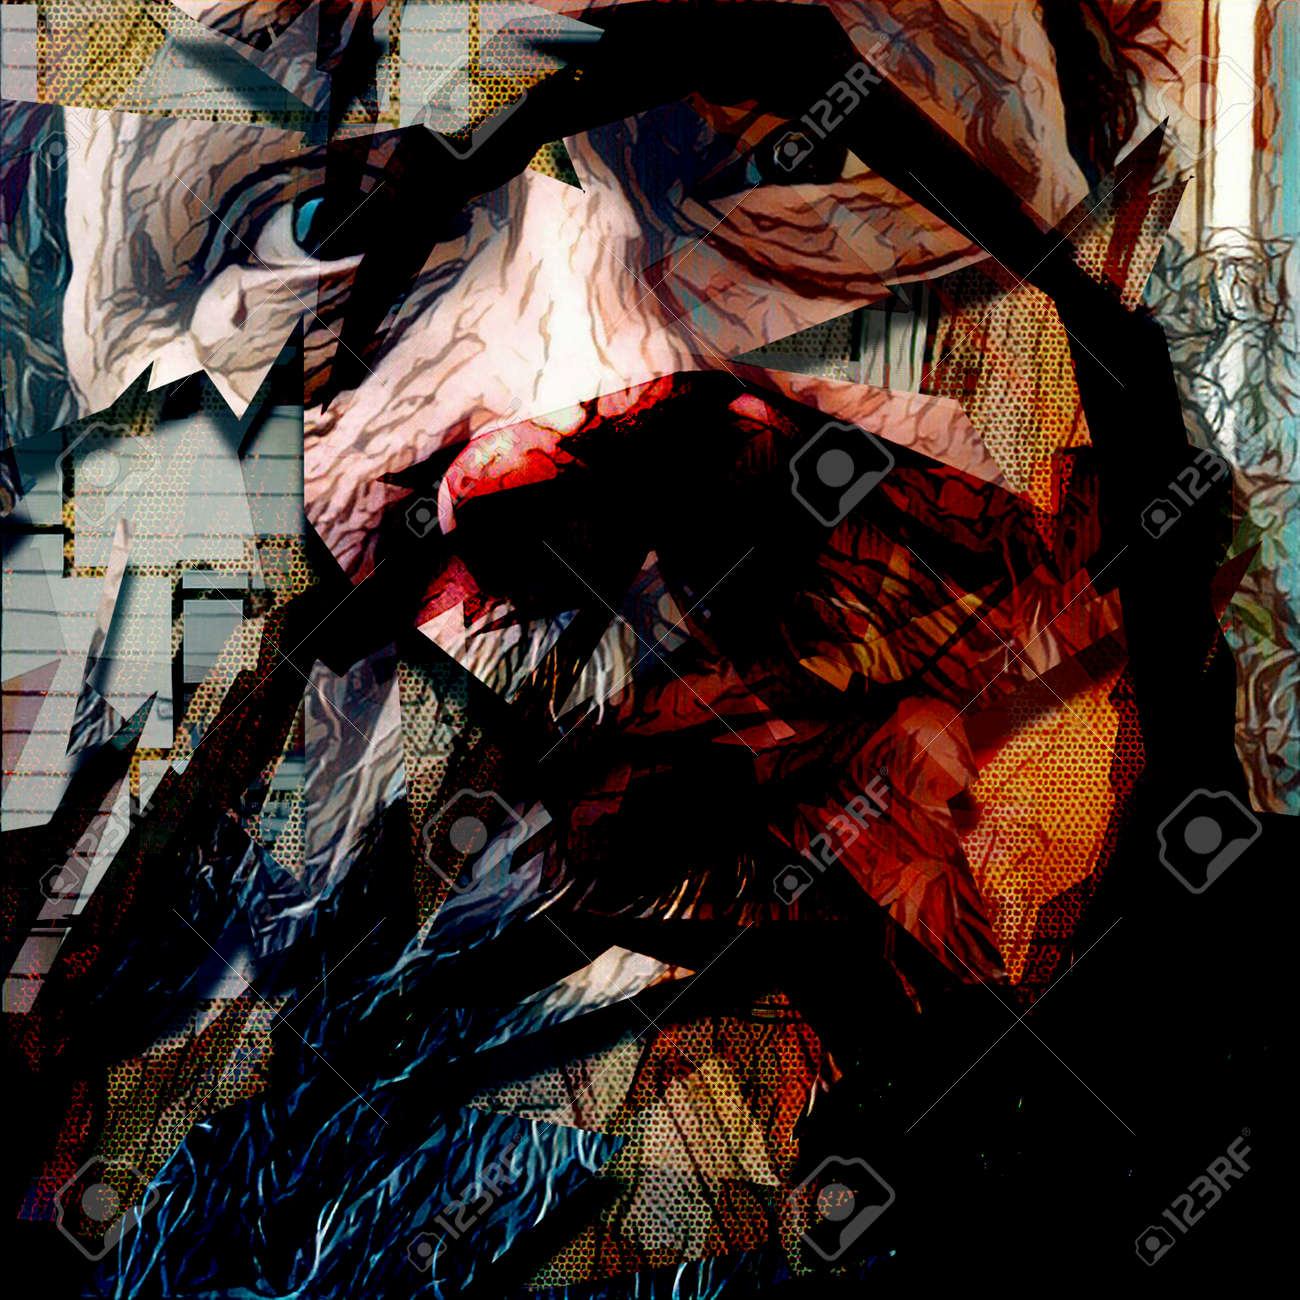 Abstract Painting In Dark Colors Old Man S Face